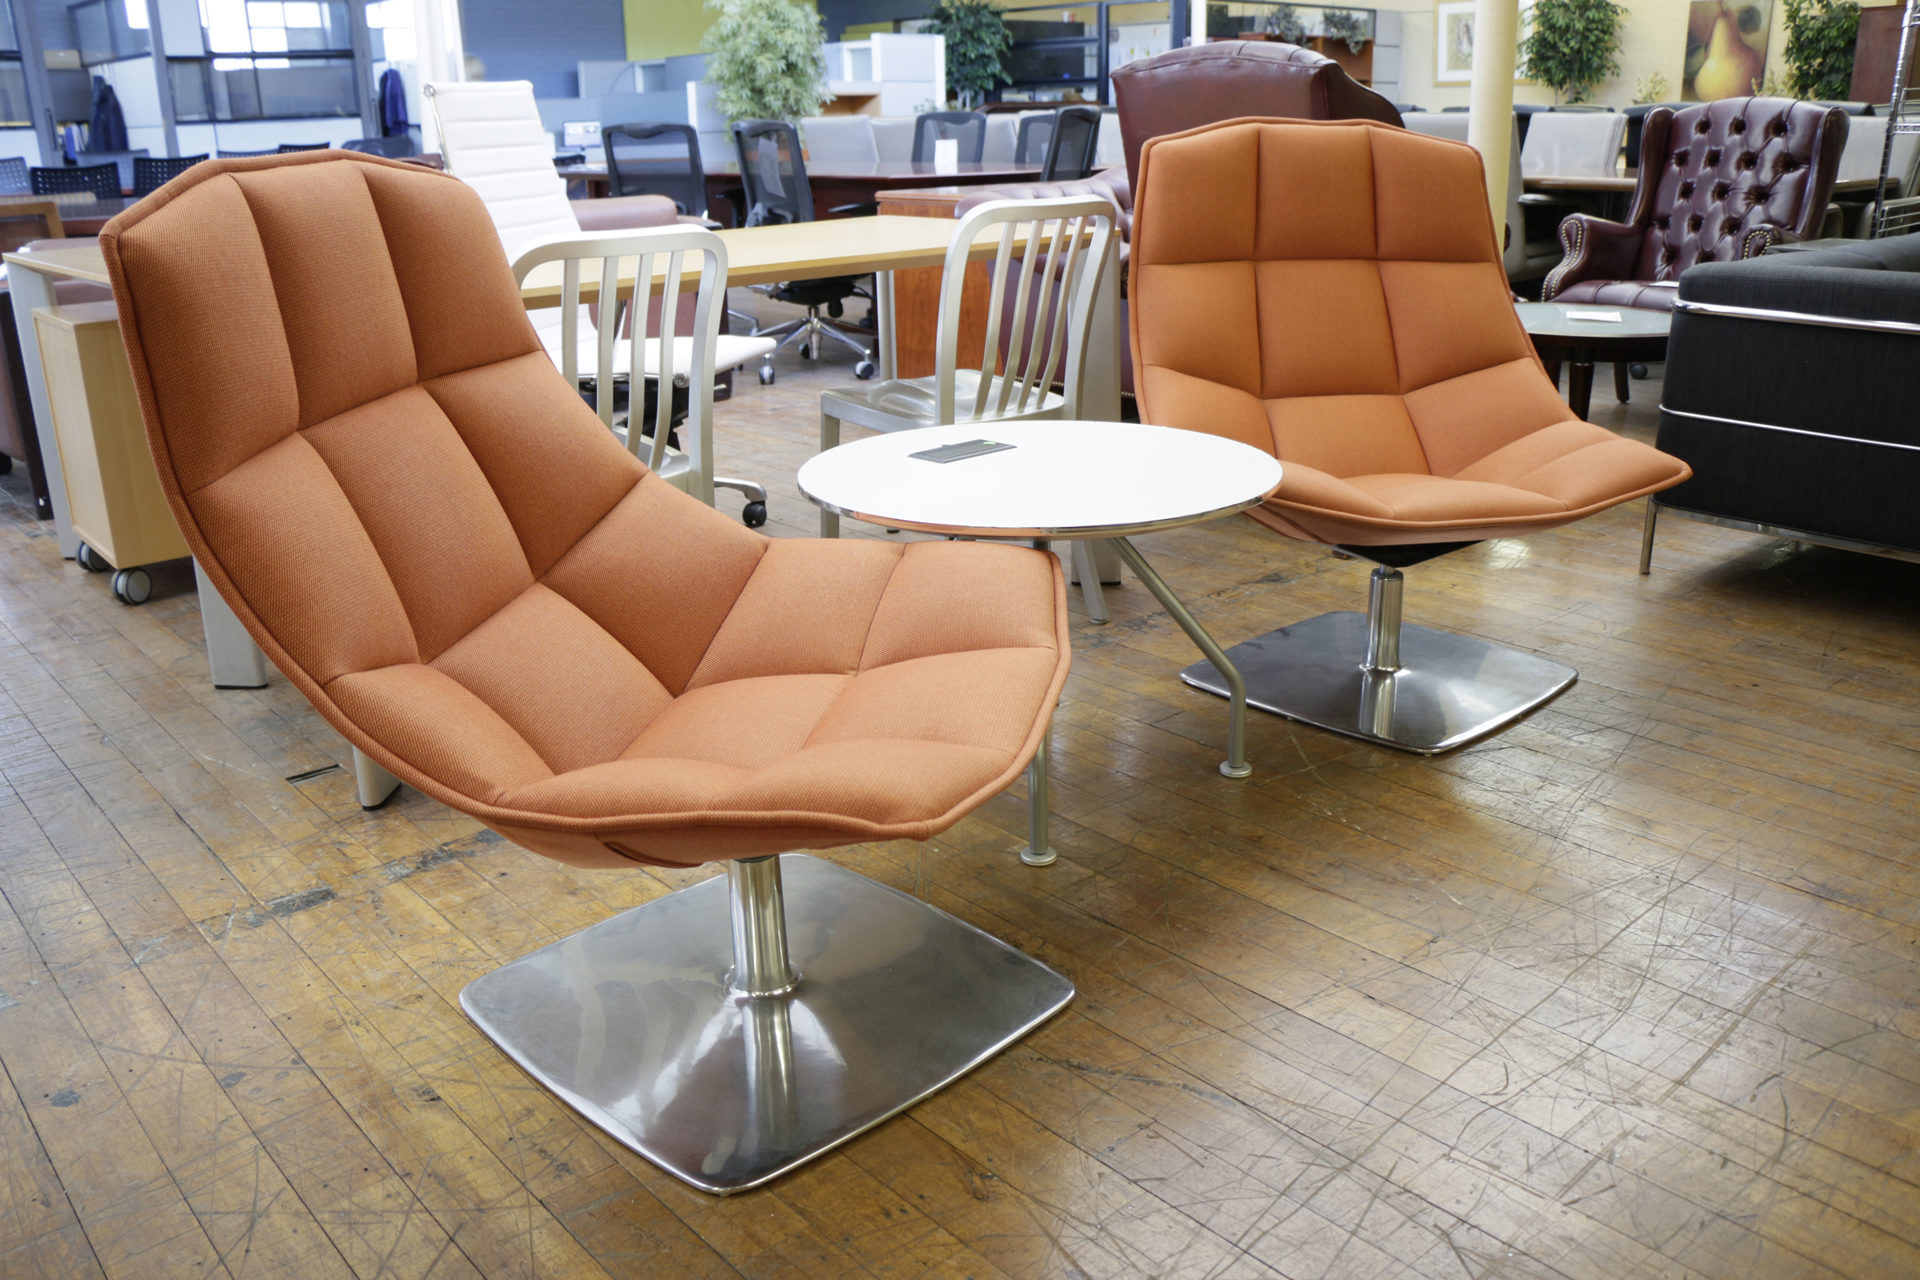 jehs laub lounge chair chiavari caps wholesale knoll and chairs with chrome pedestal base peartreeofficefurniture mg 3271 jpg